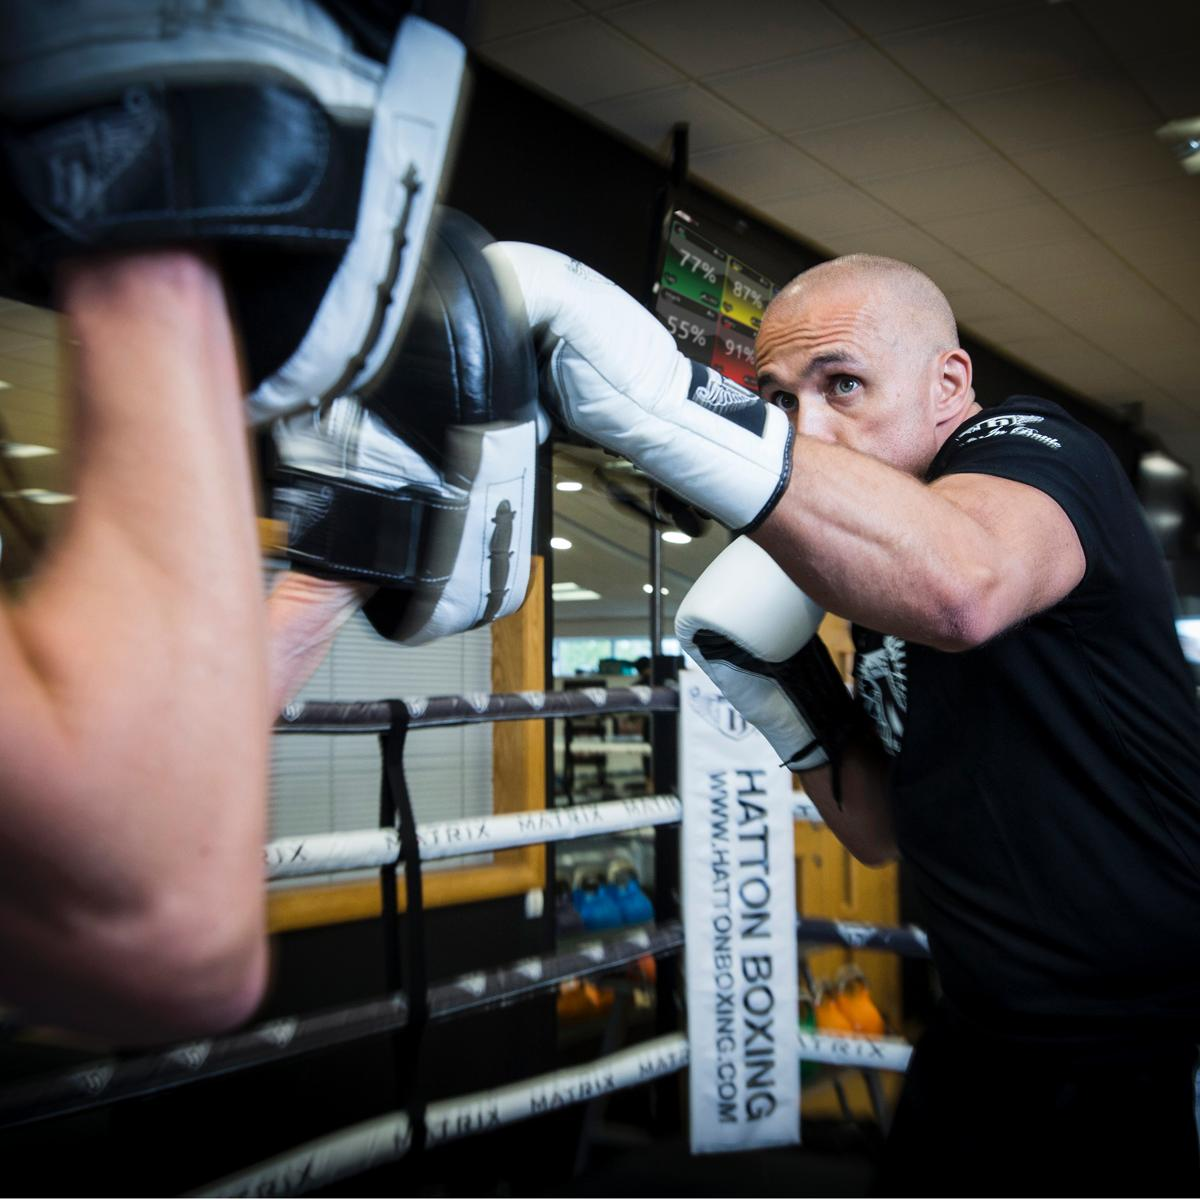 The agreement will see up to 200 training classes available to Myzone's EMEA network / Hatton Boxing